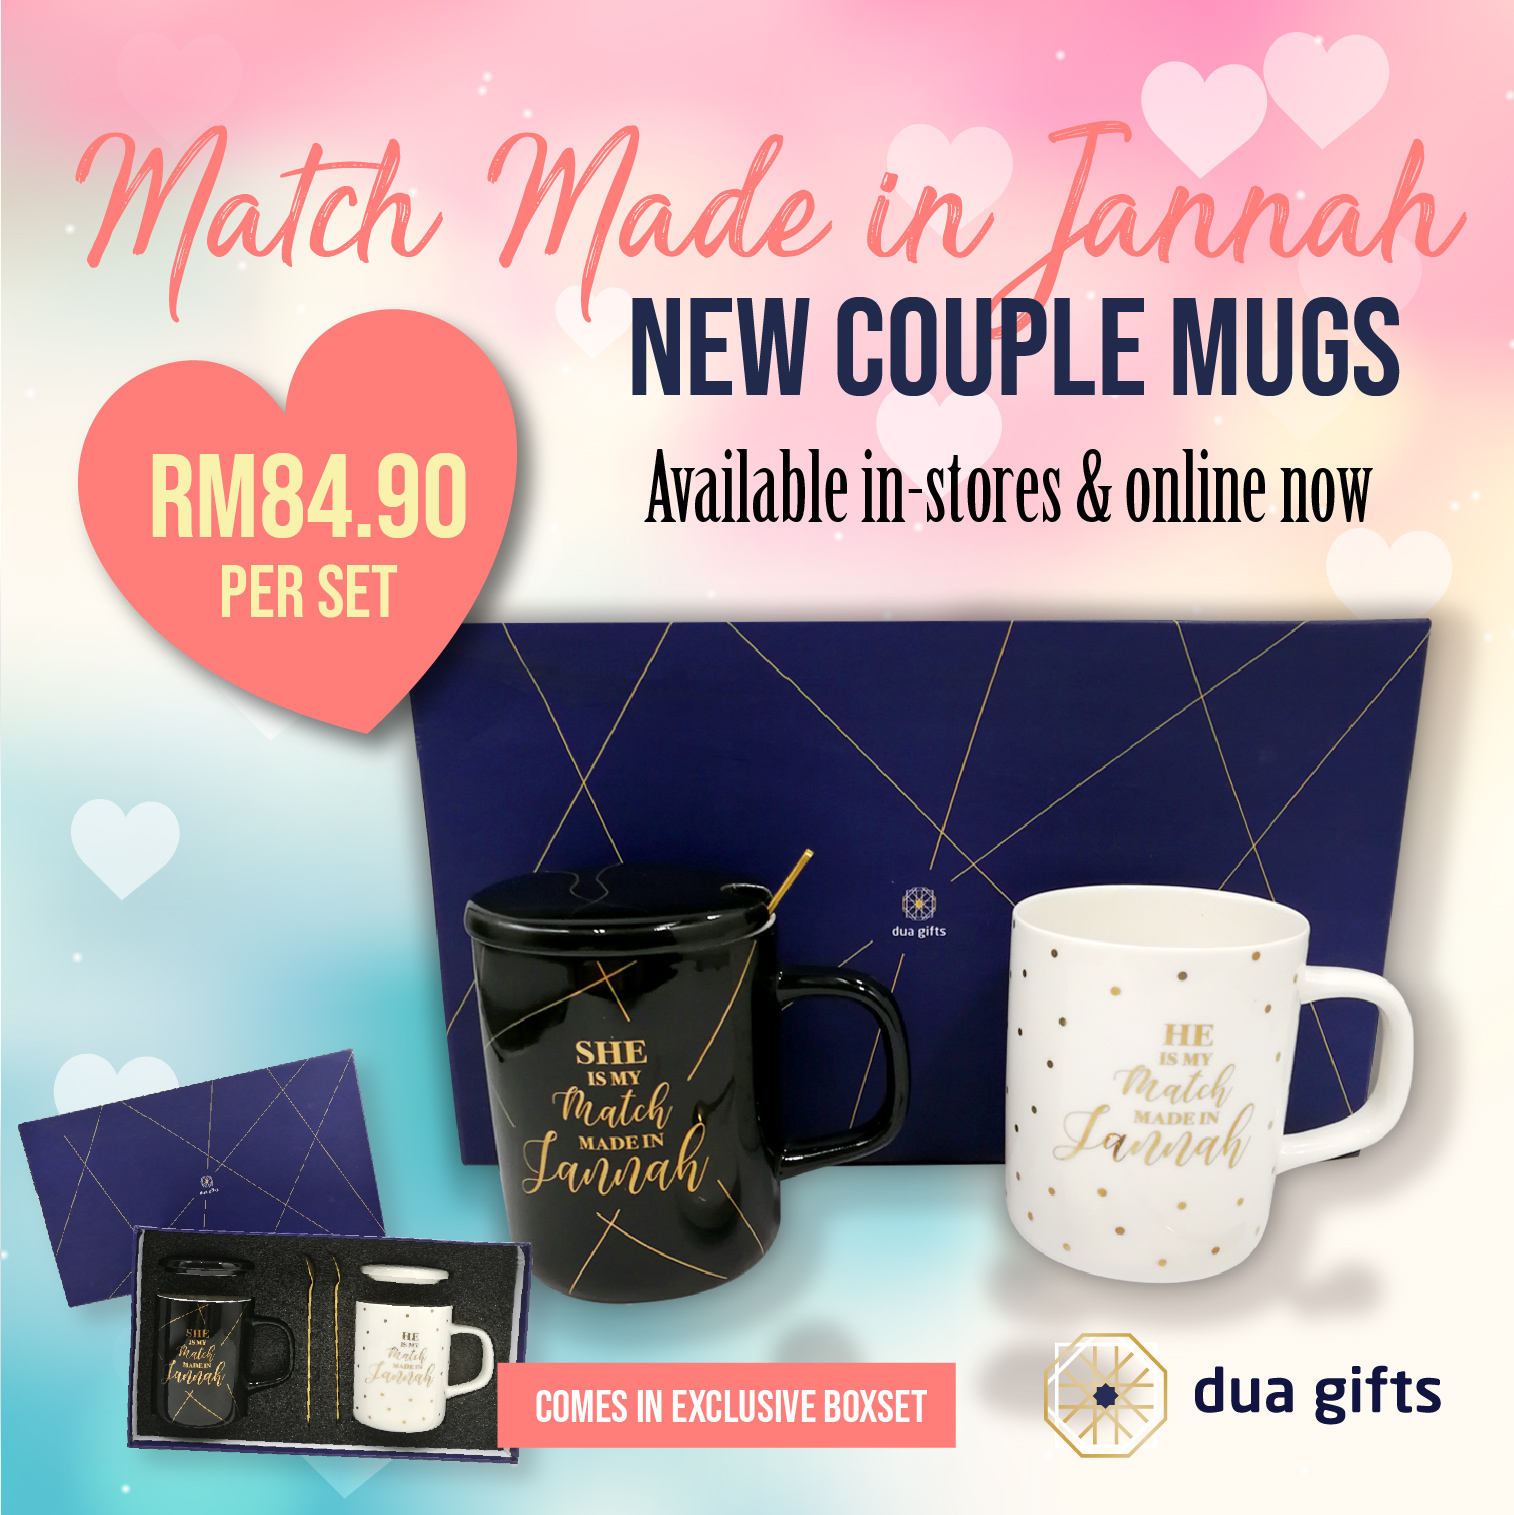 Dua Gifts - Contemporary Islamic Gifts & Stationery |